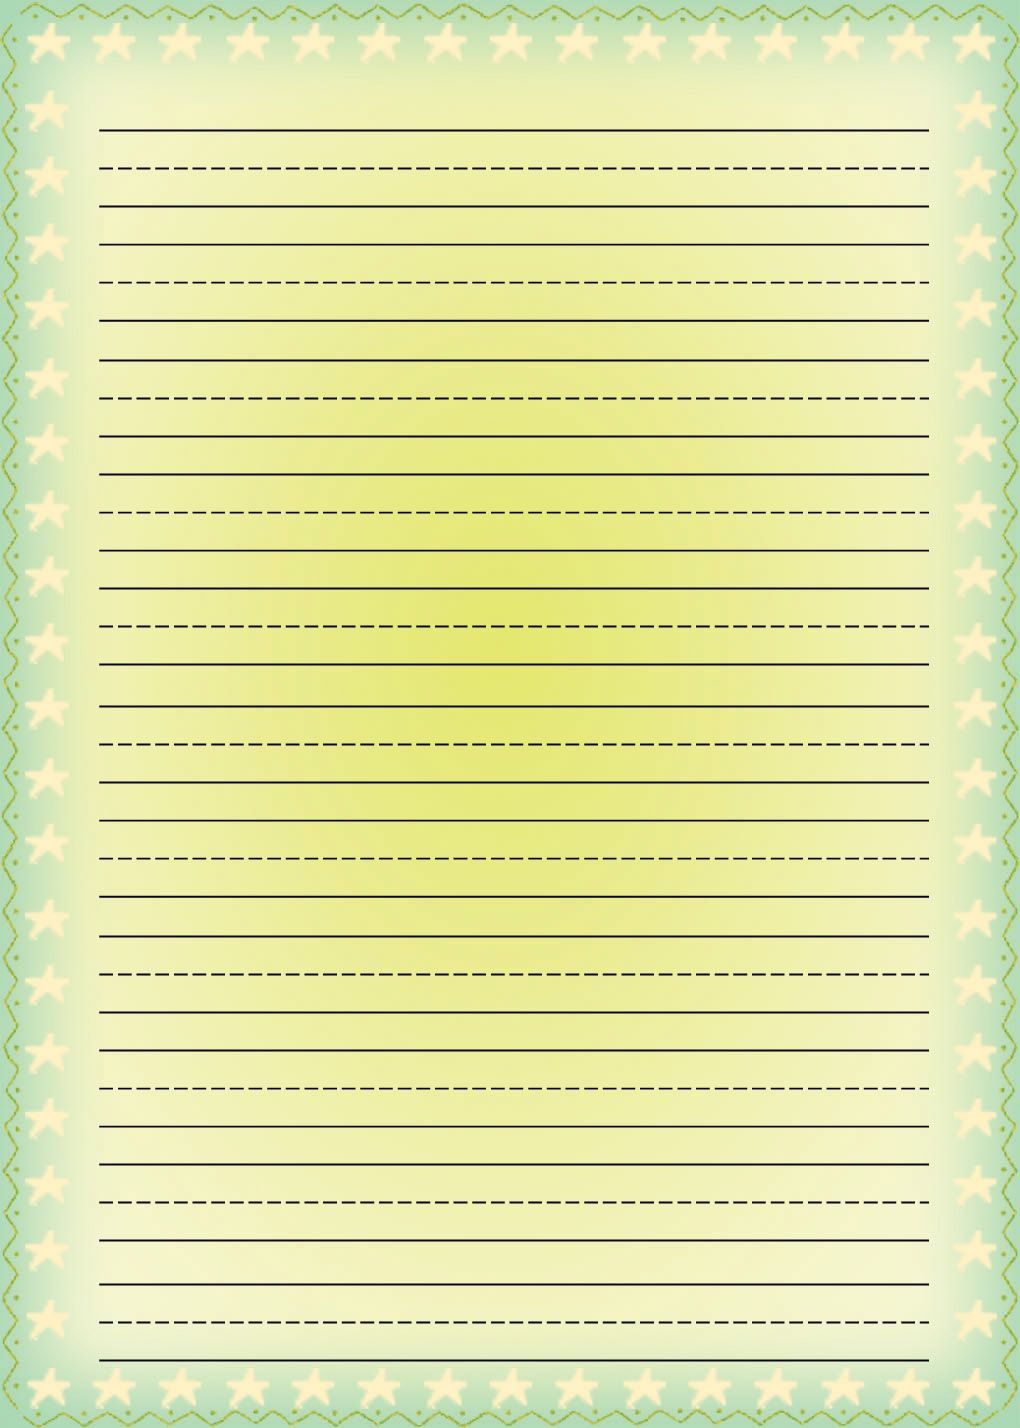 Free Printable Stationery For Kids Free Lined Kids Writing Paper Writing Paper Writing Paper Template Free Printable Stationery Printable writing paper for toddlers